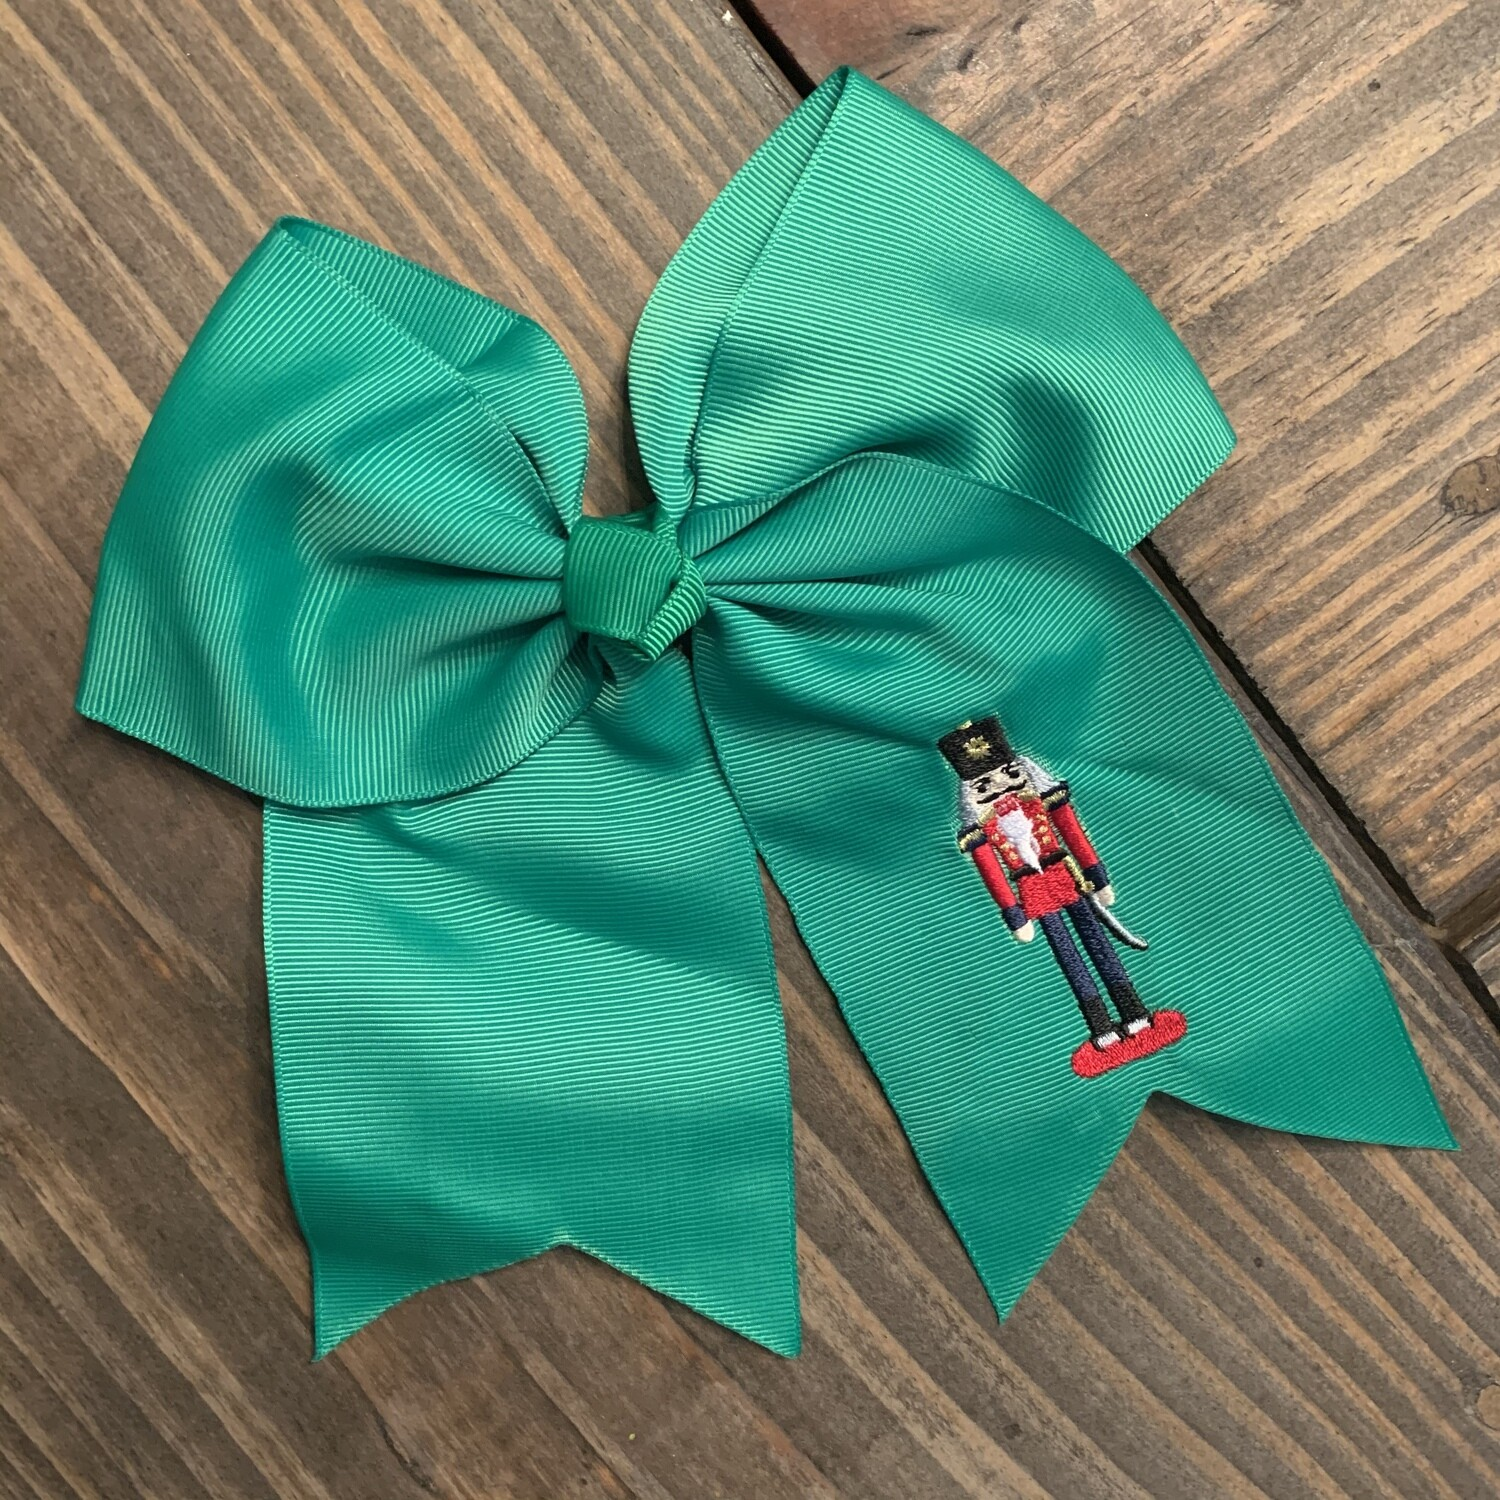 Nutcracker Hair Bow - Choose Green or White